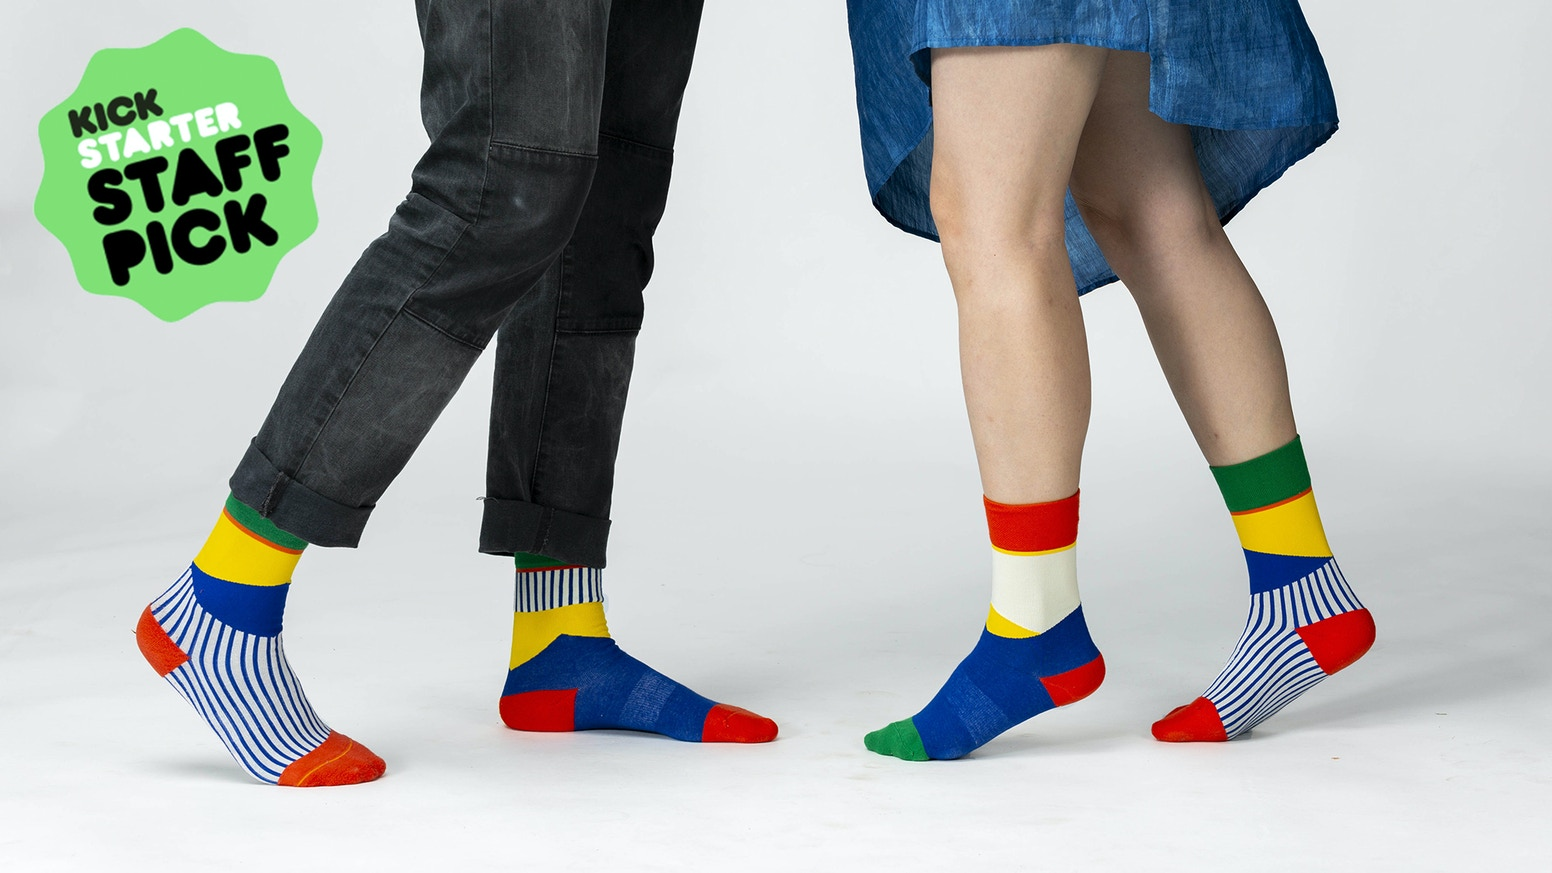 Meet the world's most comfortable socks with a cause